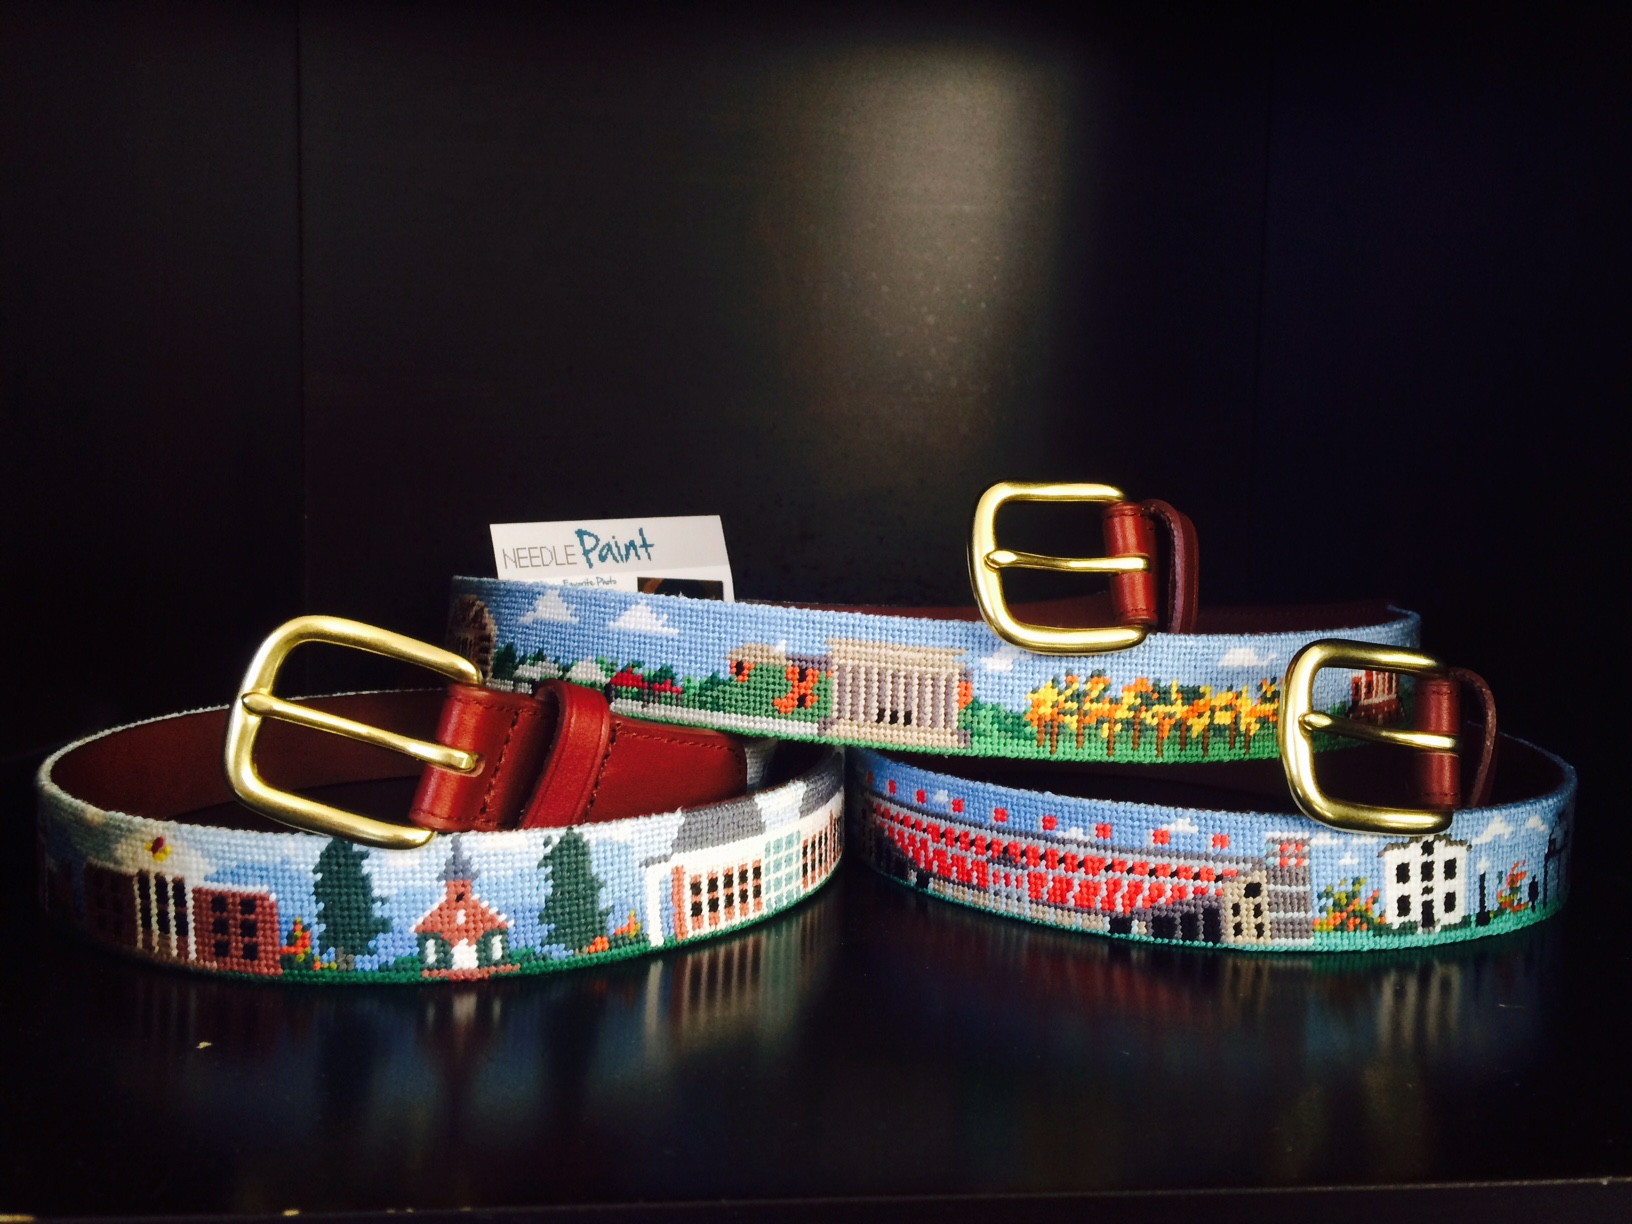 University of Georgia - Washington and Lee - University of Alabama - Needlepoint Belts